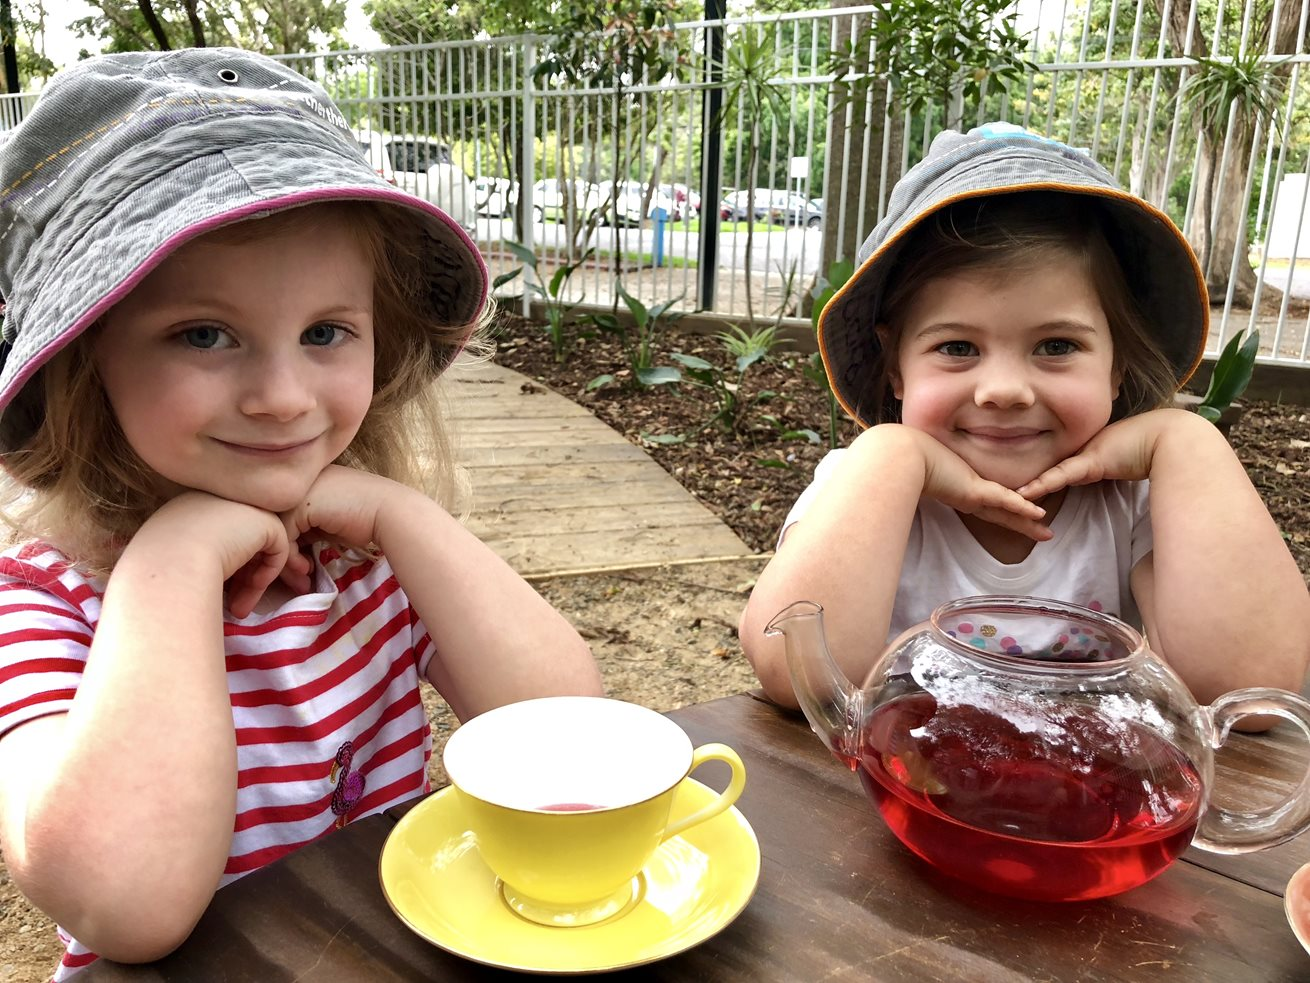 Sharing of tea creates special moments